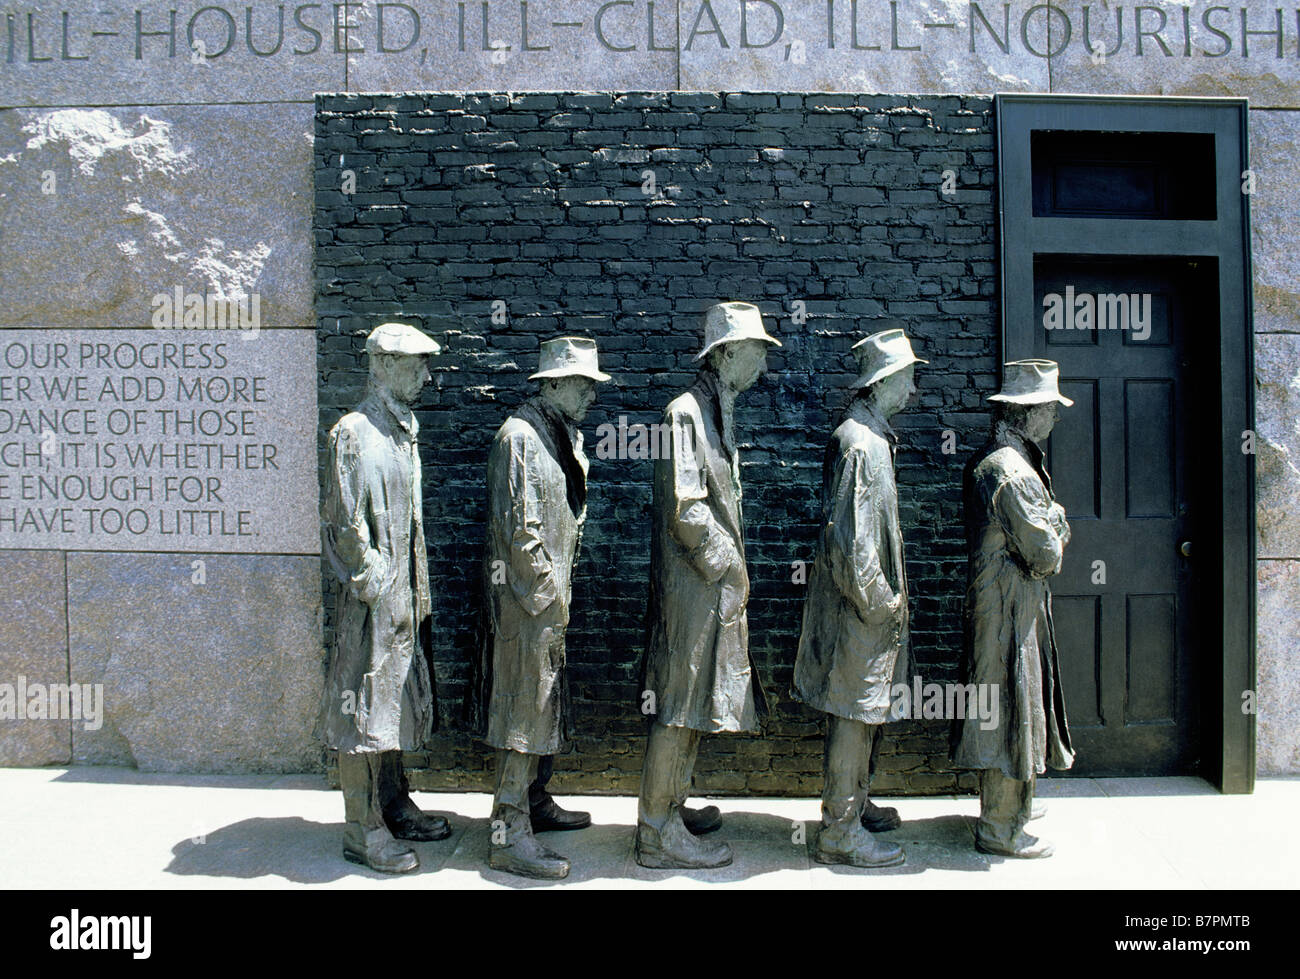 USA Washington DC The Franklin Delano Roosevelt Memorial Sculpture Breadline - Stock Image